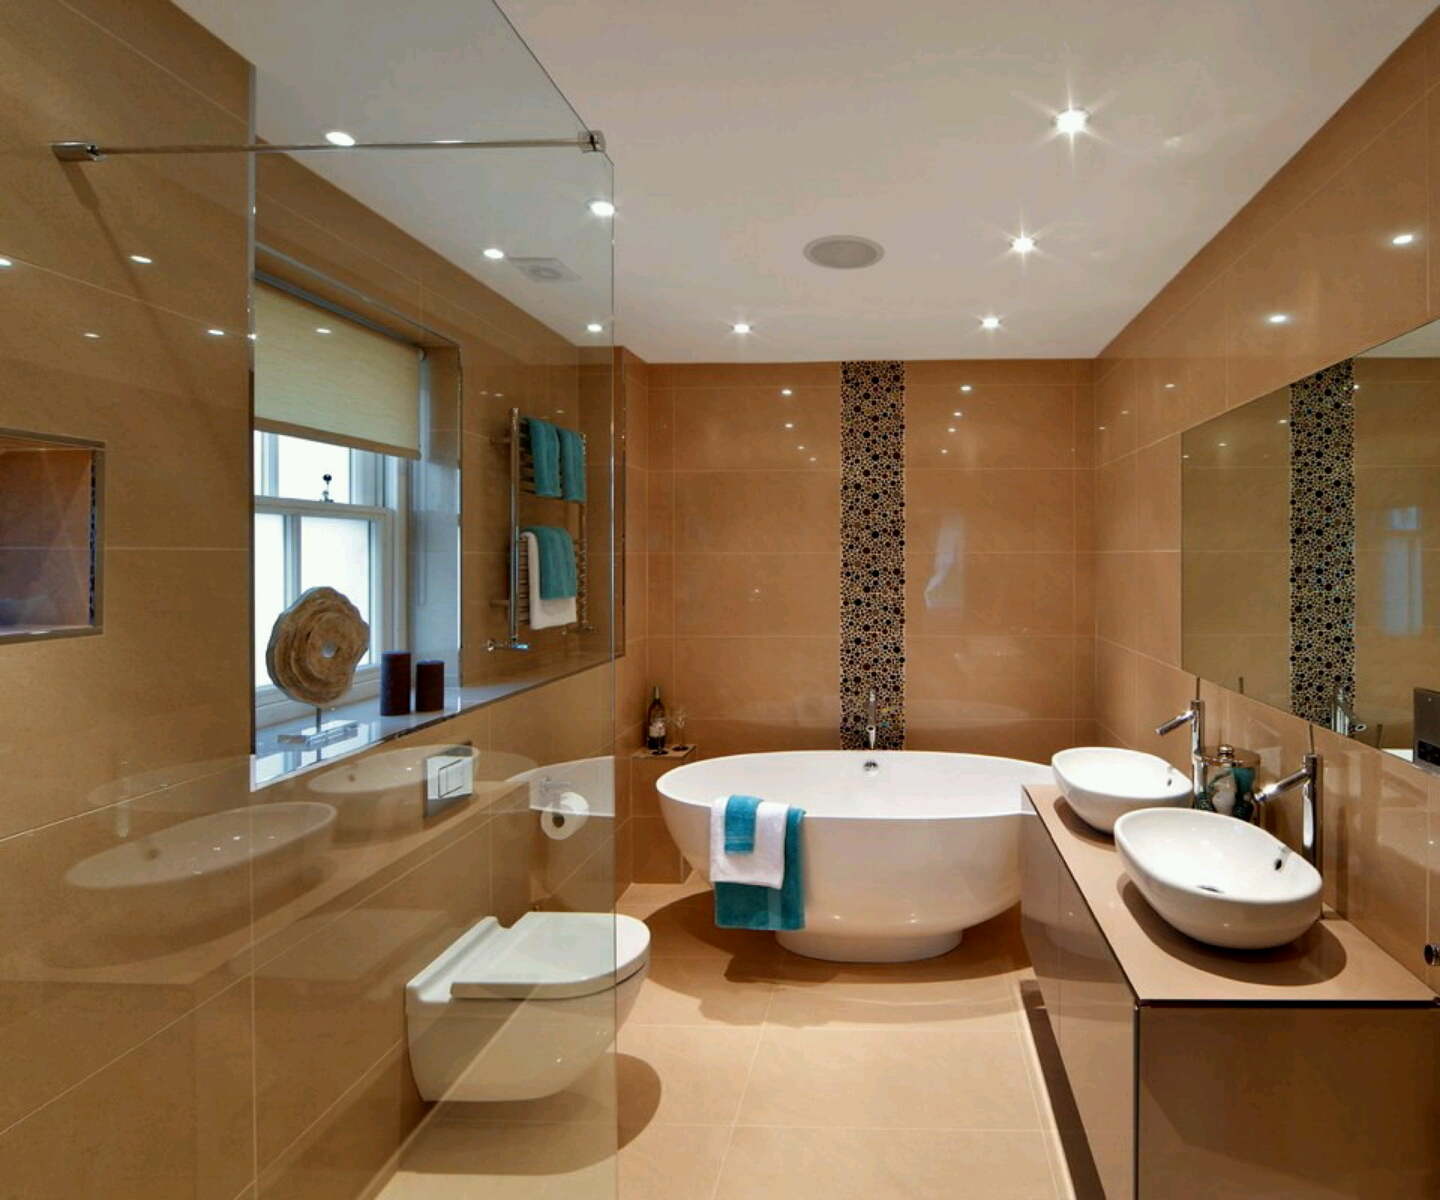 25 small but luxury bathroom design ideas for Compact bathroom design ideas